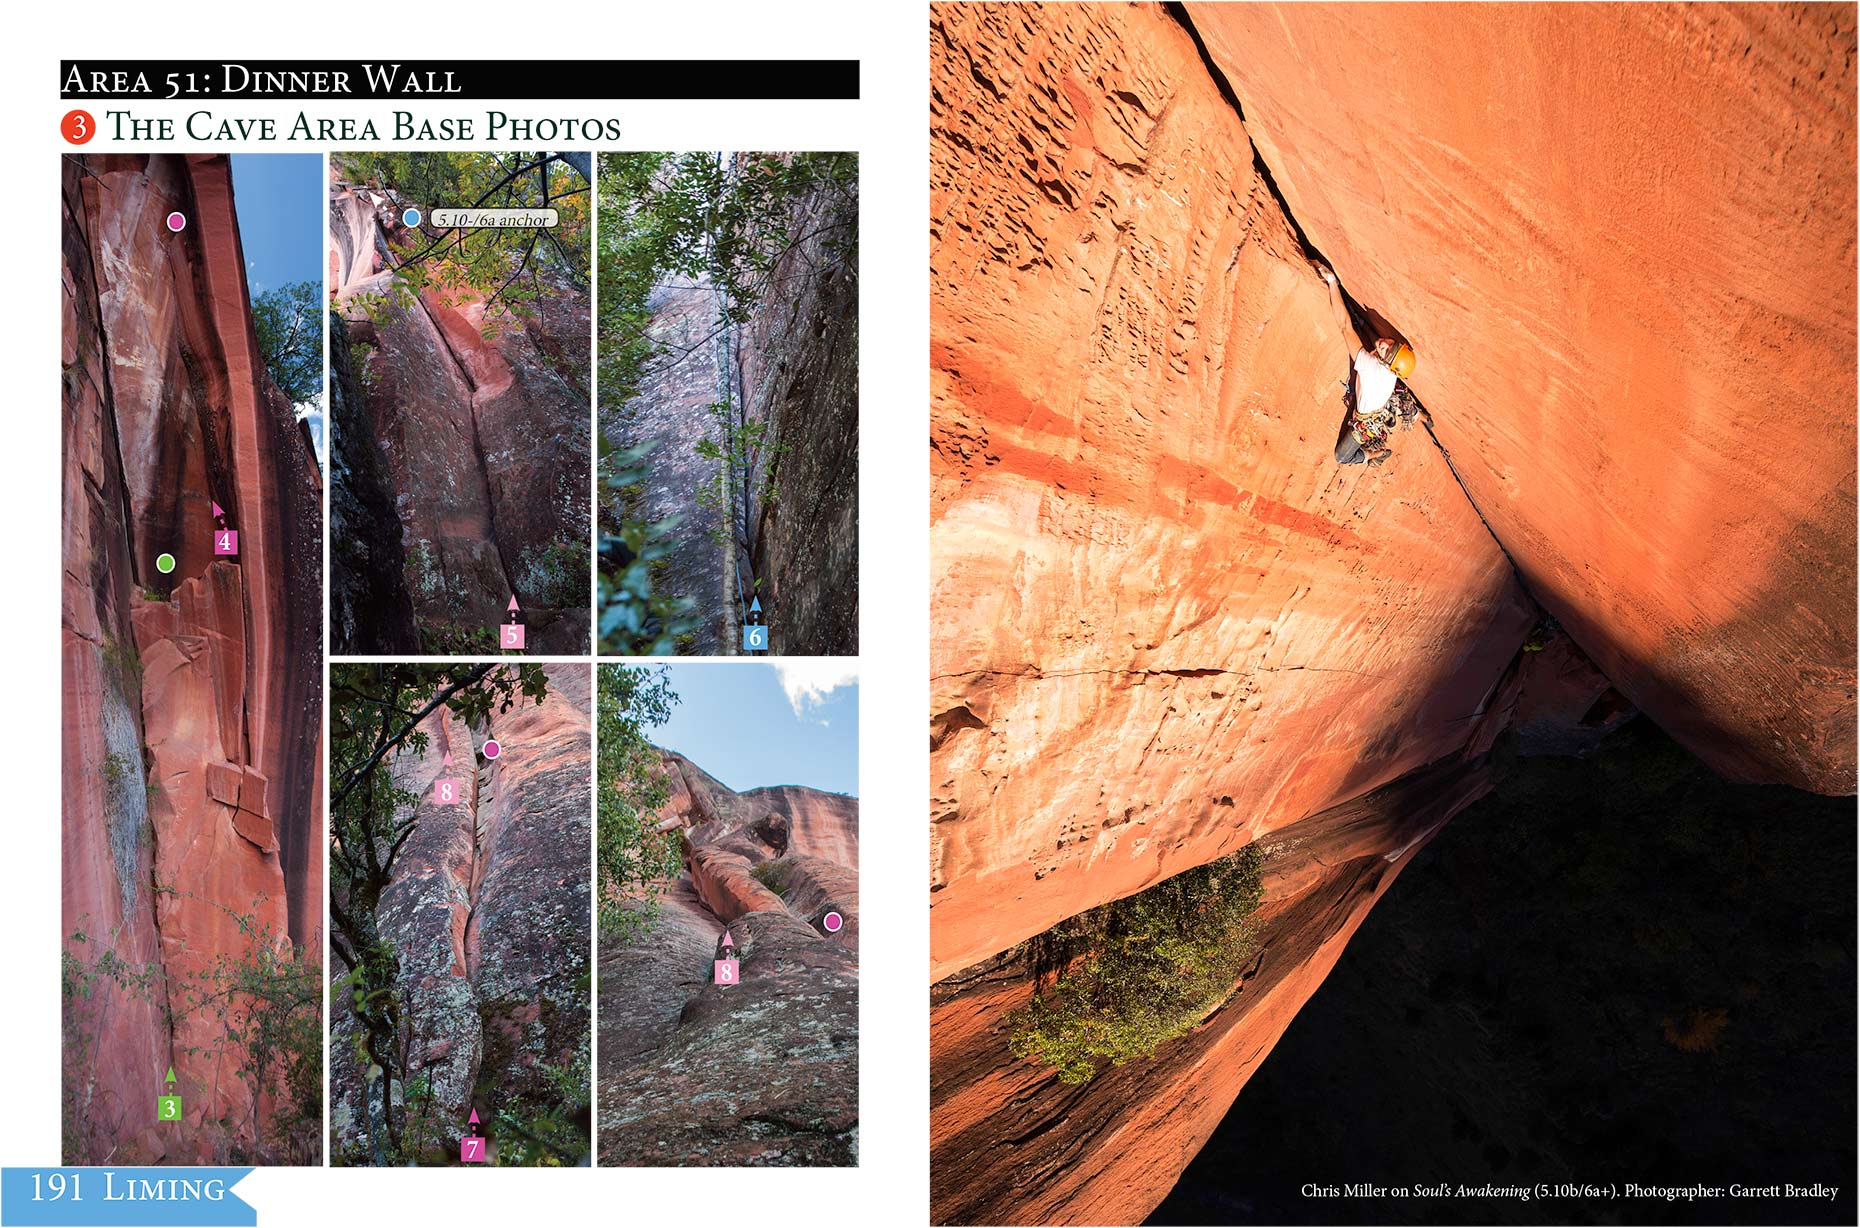 201402_Climb_China_Guidebook_g-bradley-4_APF